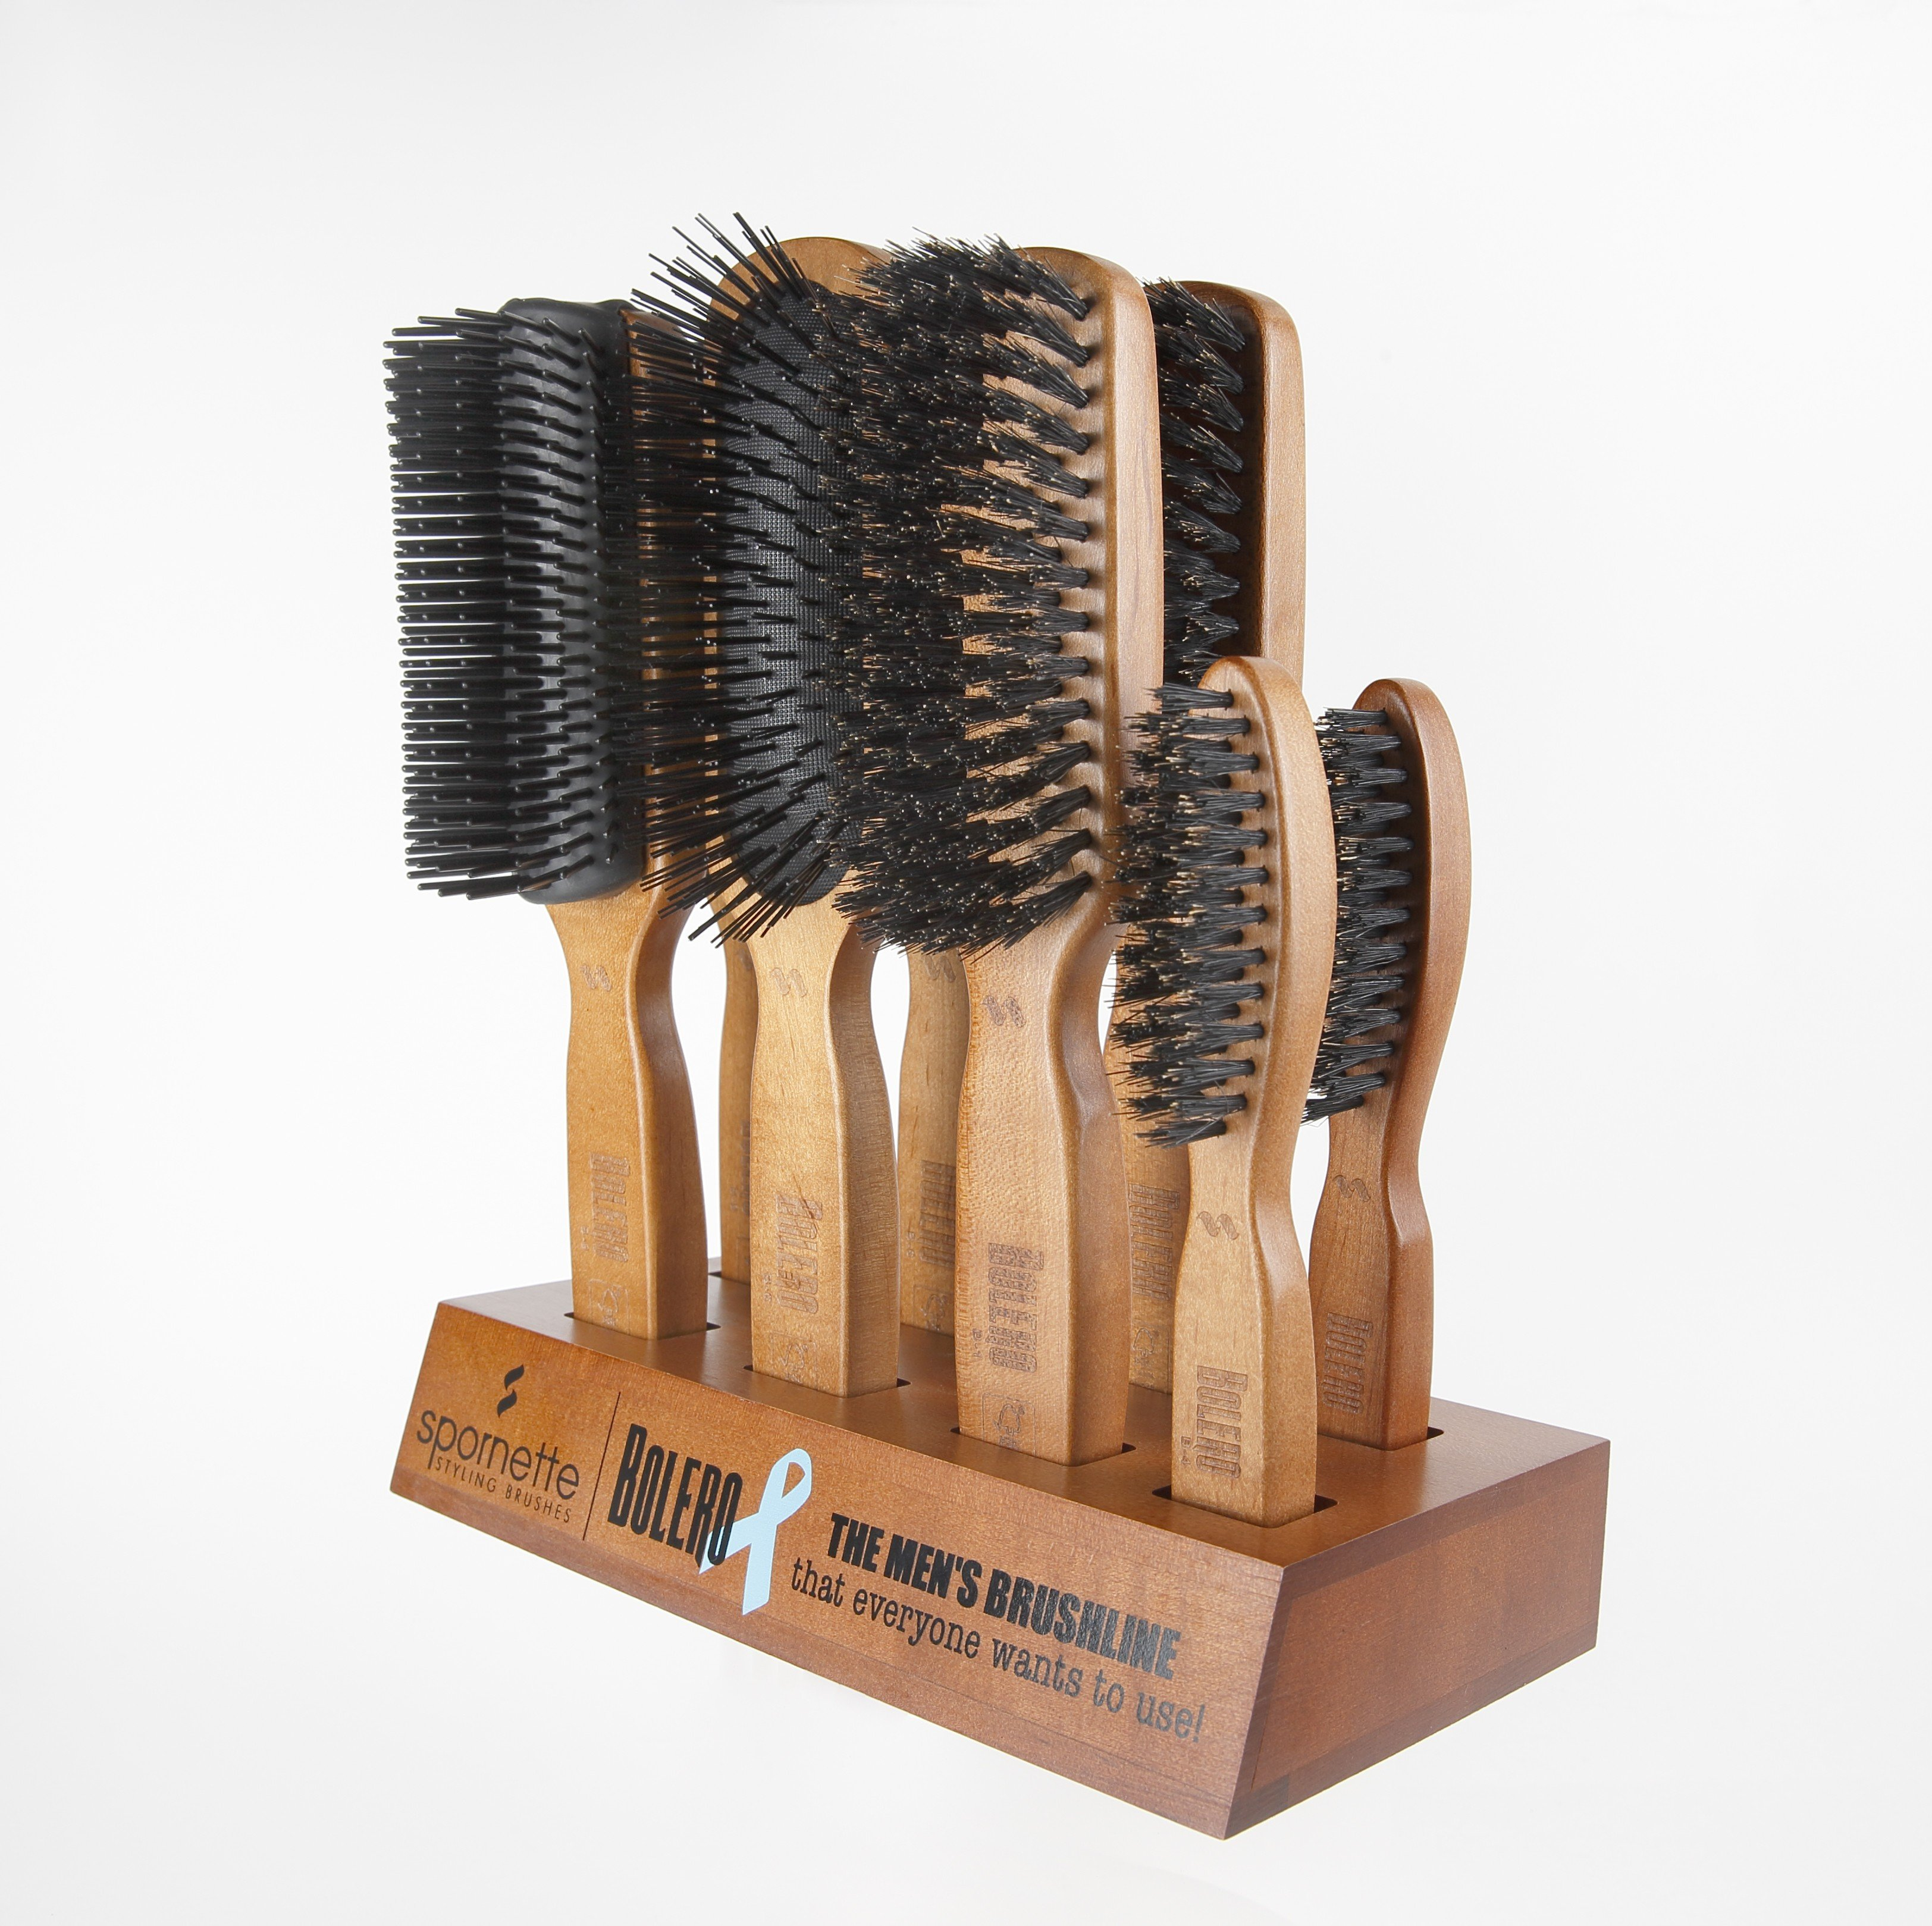 The new Bolero brush line for men from Spornette.